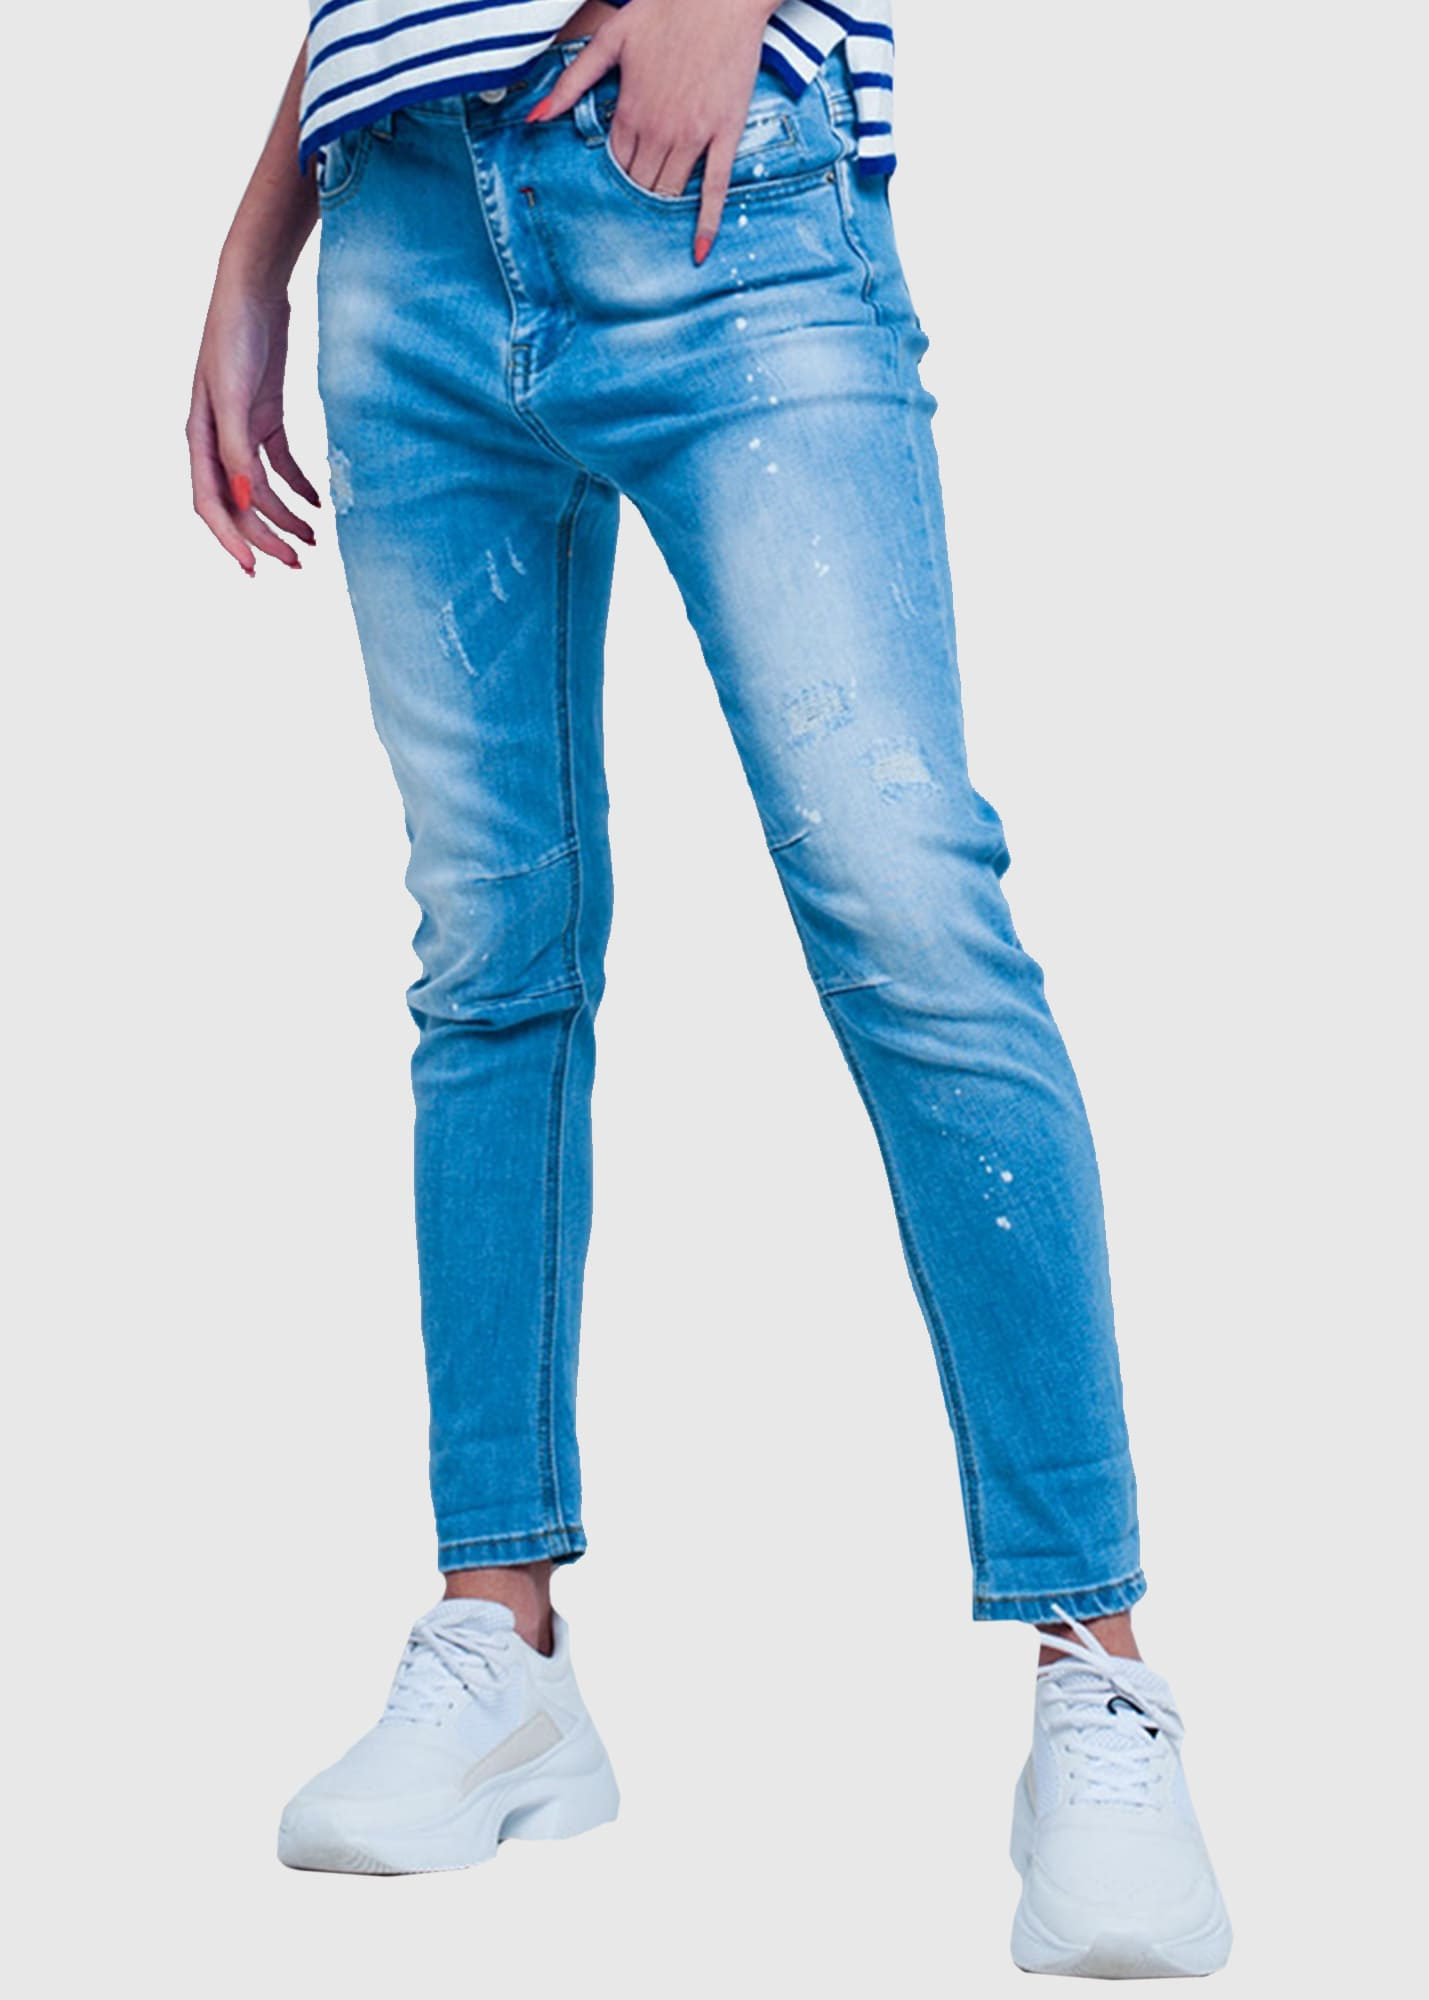 Slim Fit women's distressed jeans